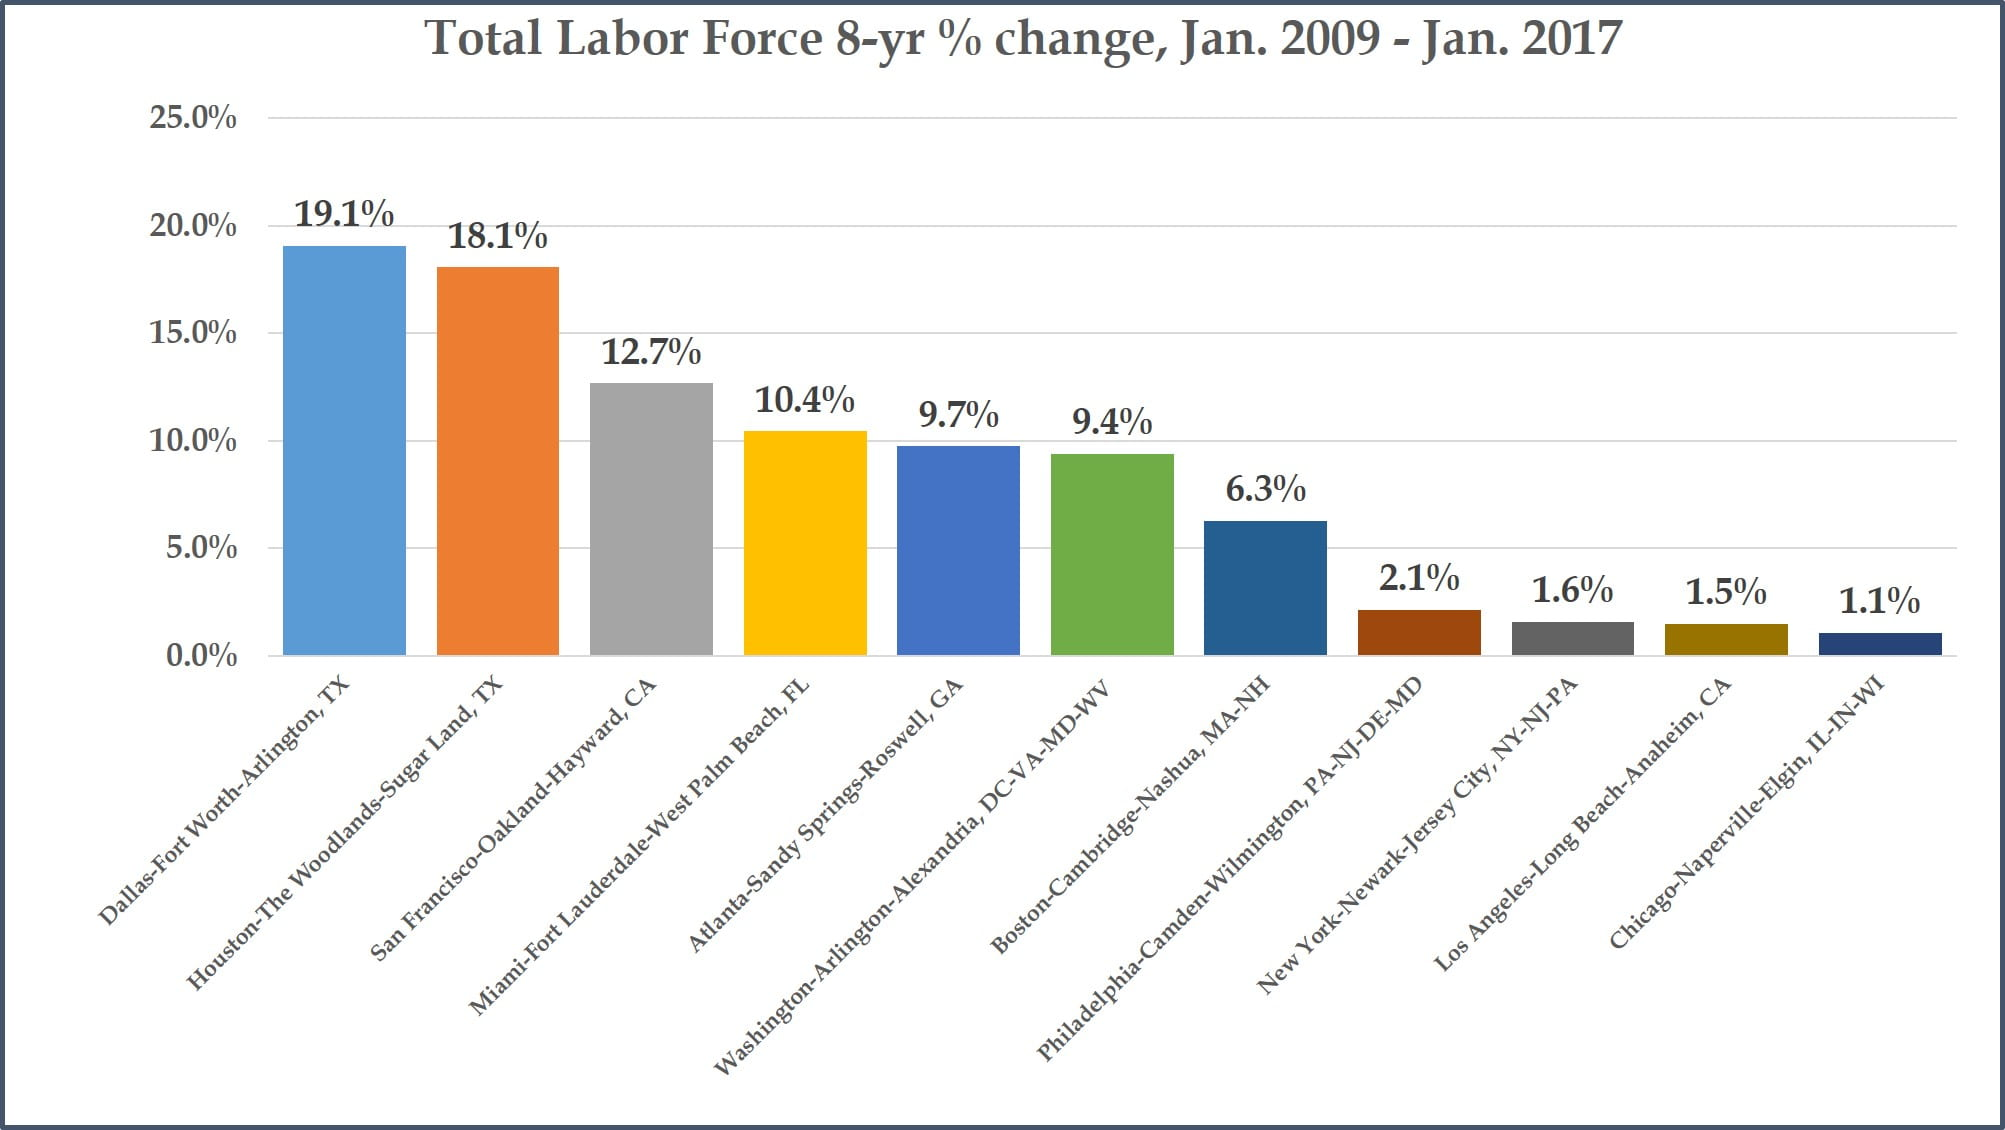 Total Labor Force - 8-year changes - Top Metros